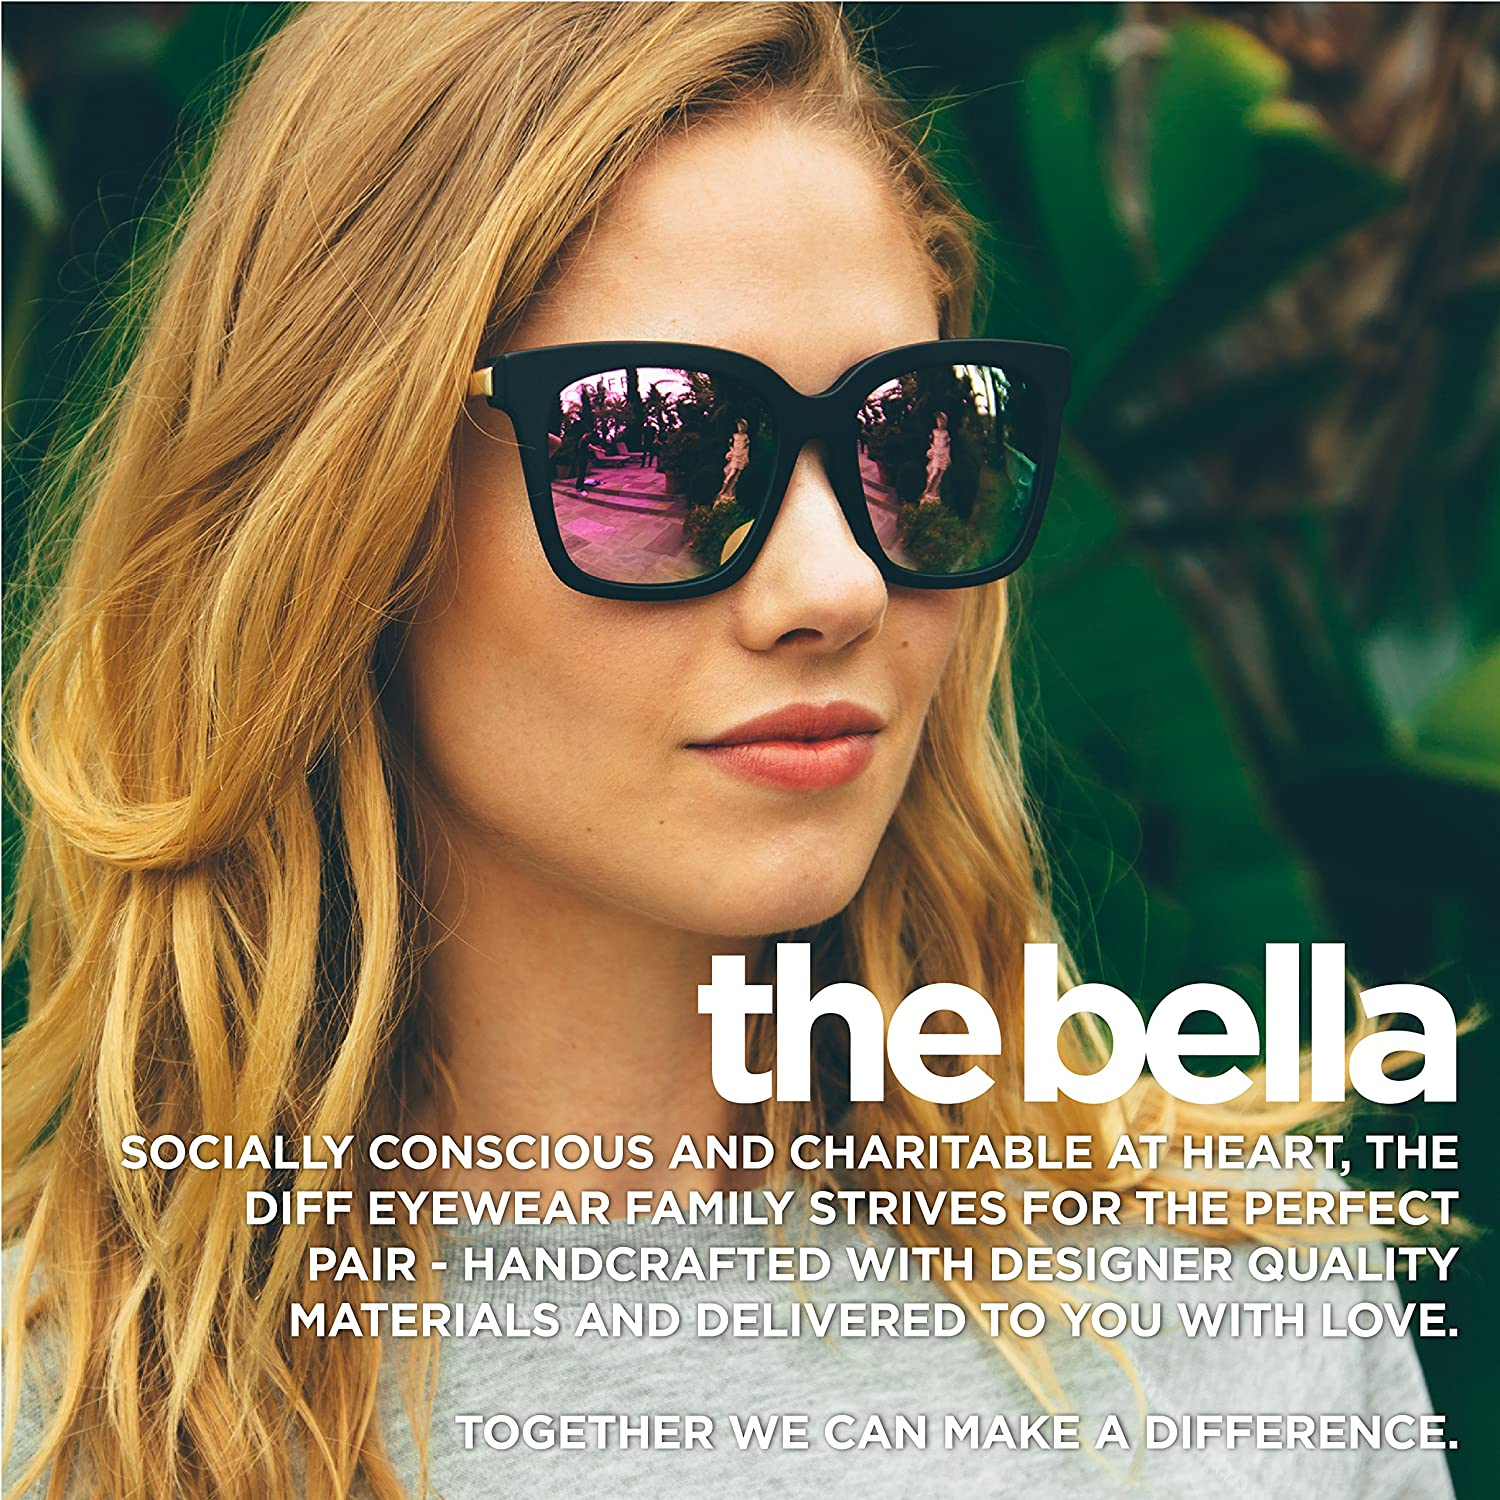 cf7ba4c0a6c Amazon.com  Diff Eyewear  Bella - Designer Square Sunglasses - 100%  UVA UVB  Clothing